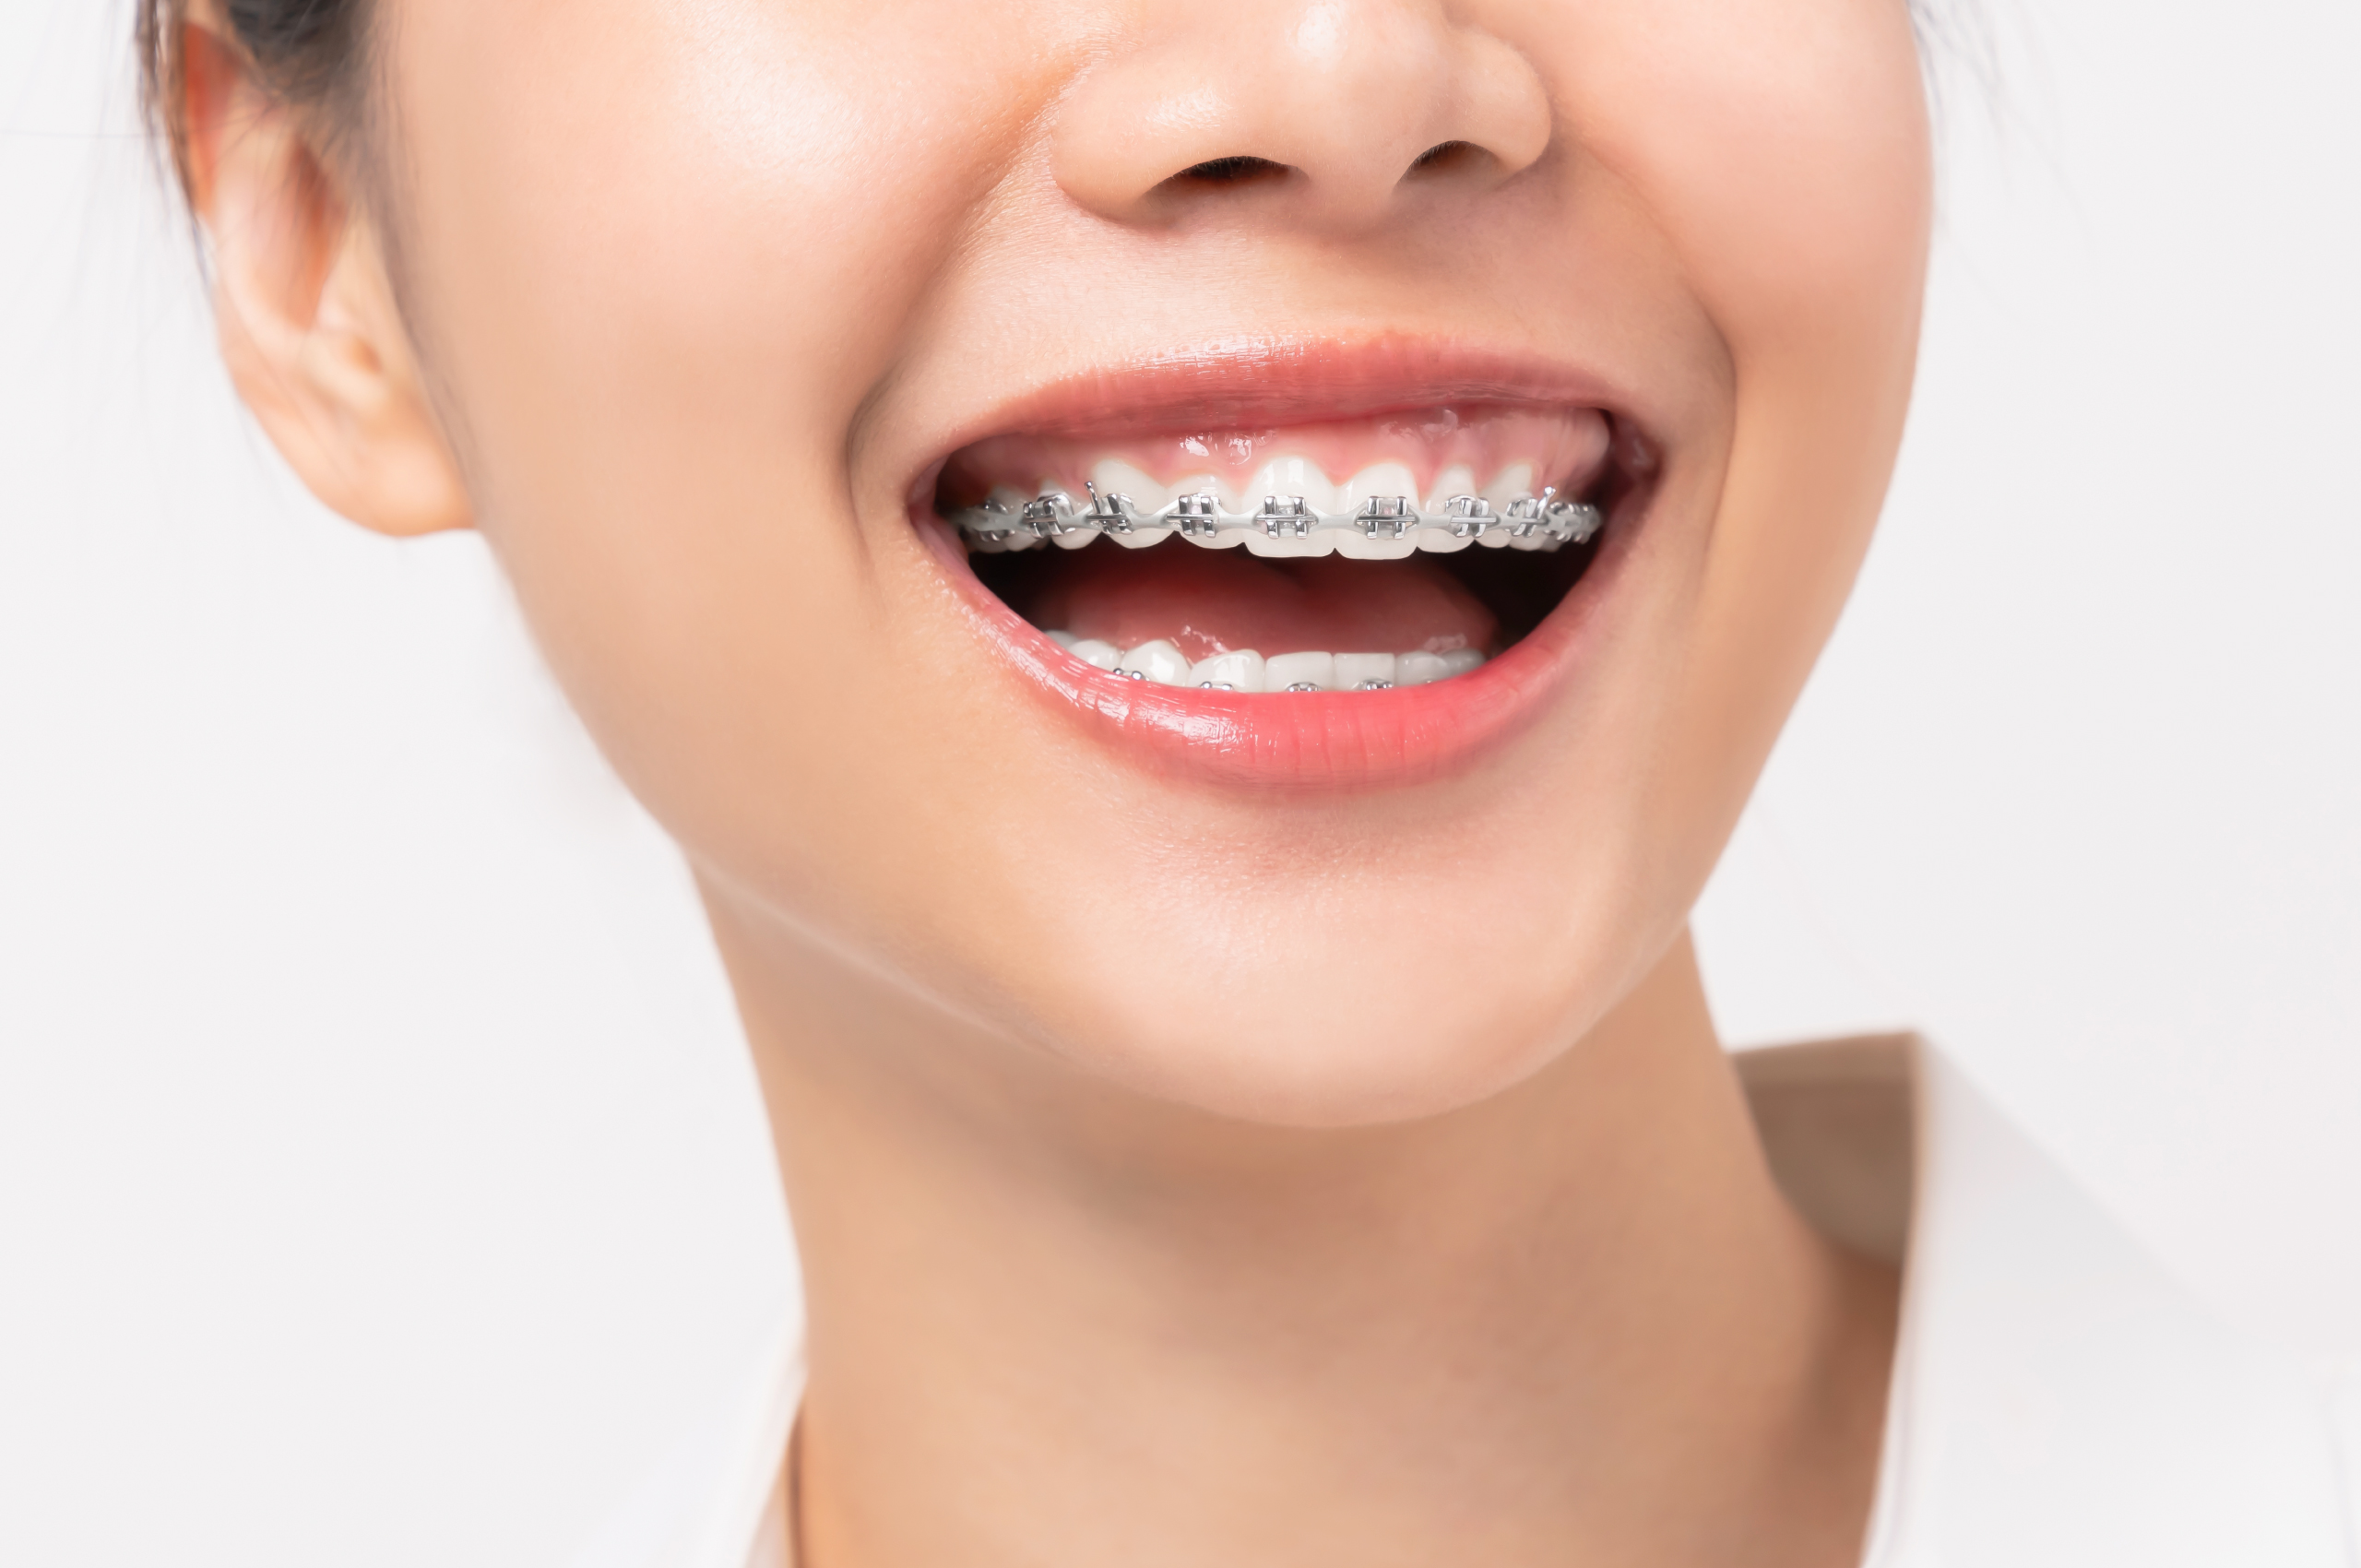 Dental braces help perfect your smile